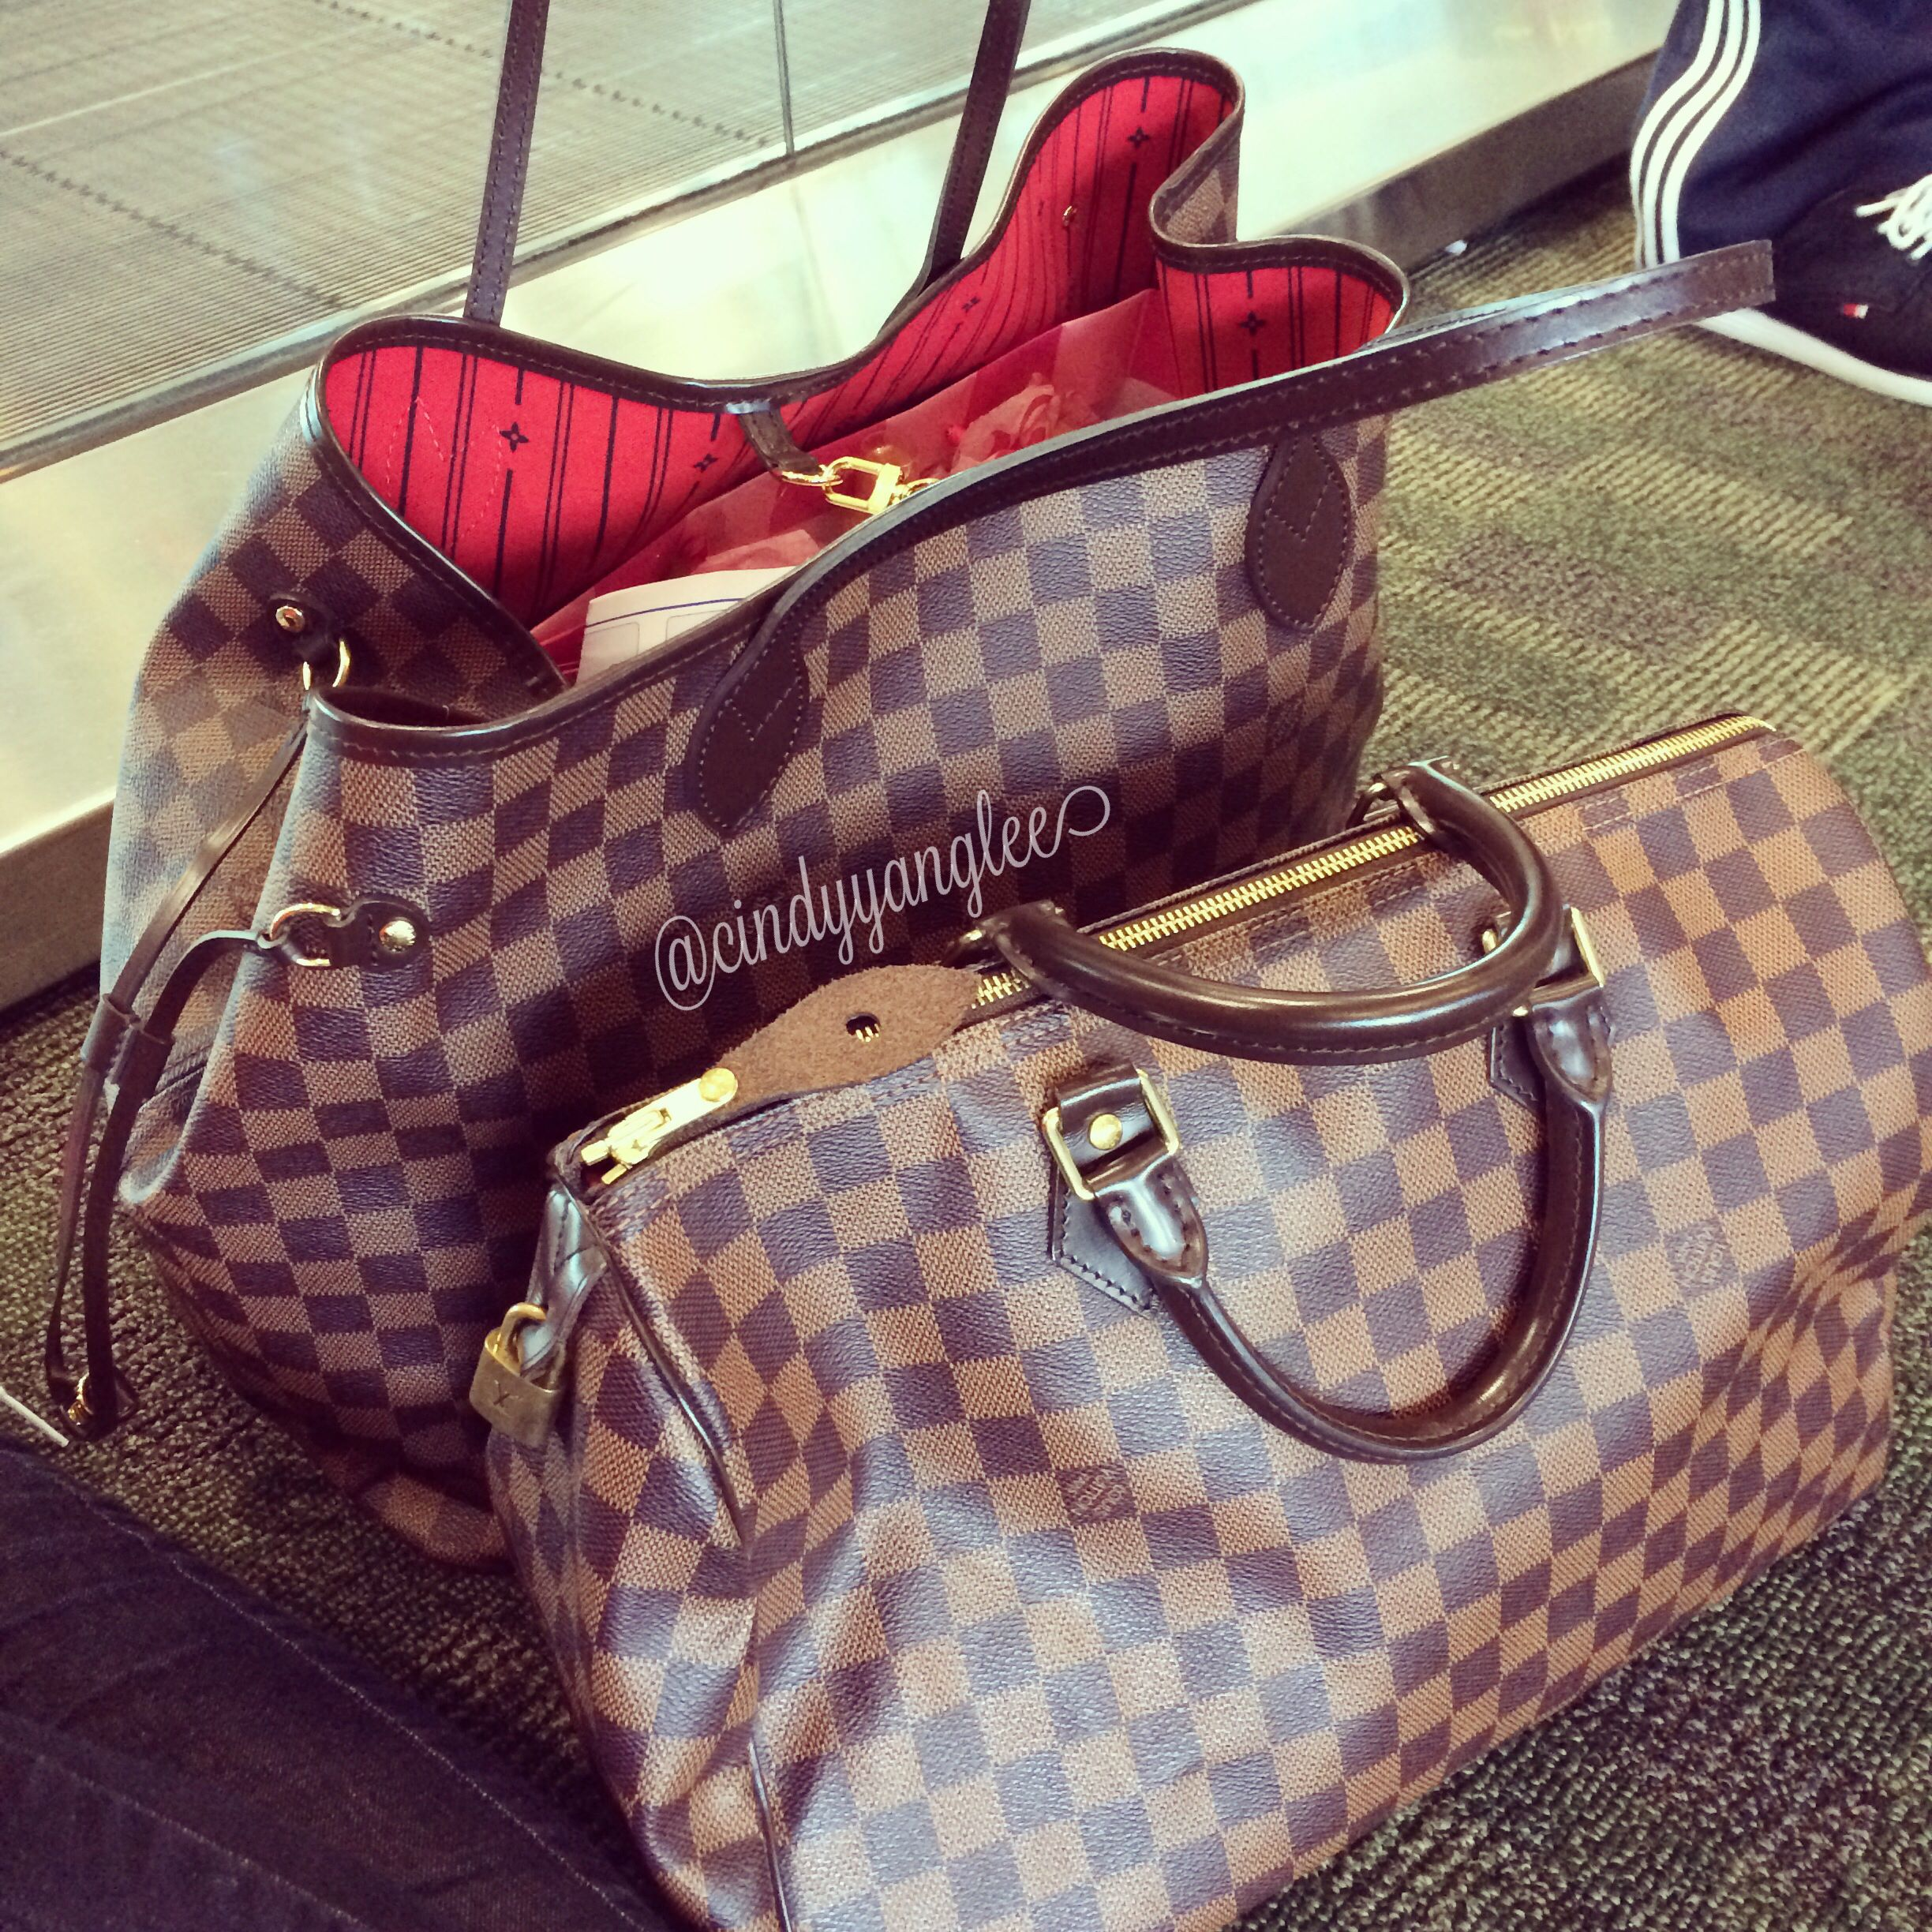 acaab395c321 At the airport with my Louis Vuitton bags  ) Neverfull GM Speedy 35 Damier  Ebene DE Travel